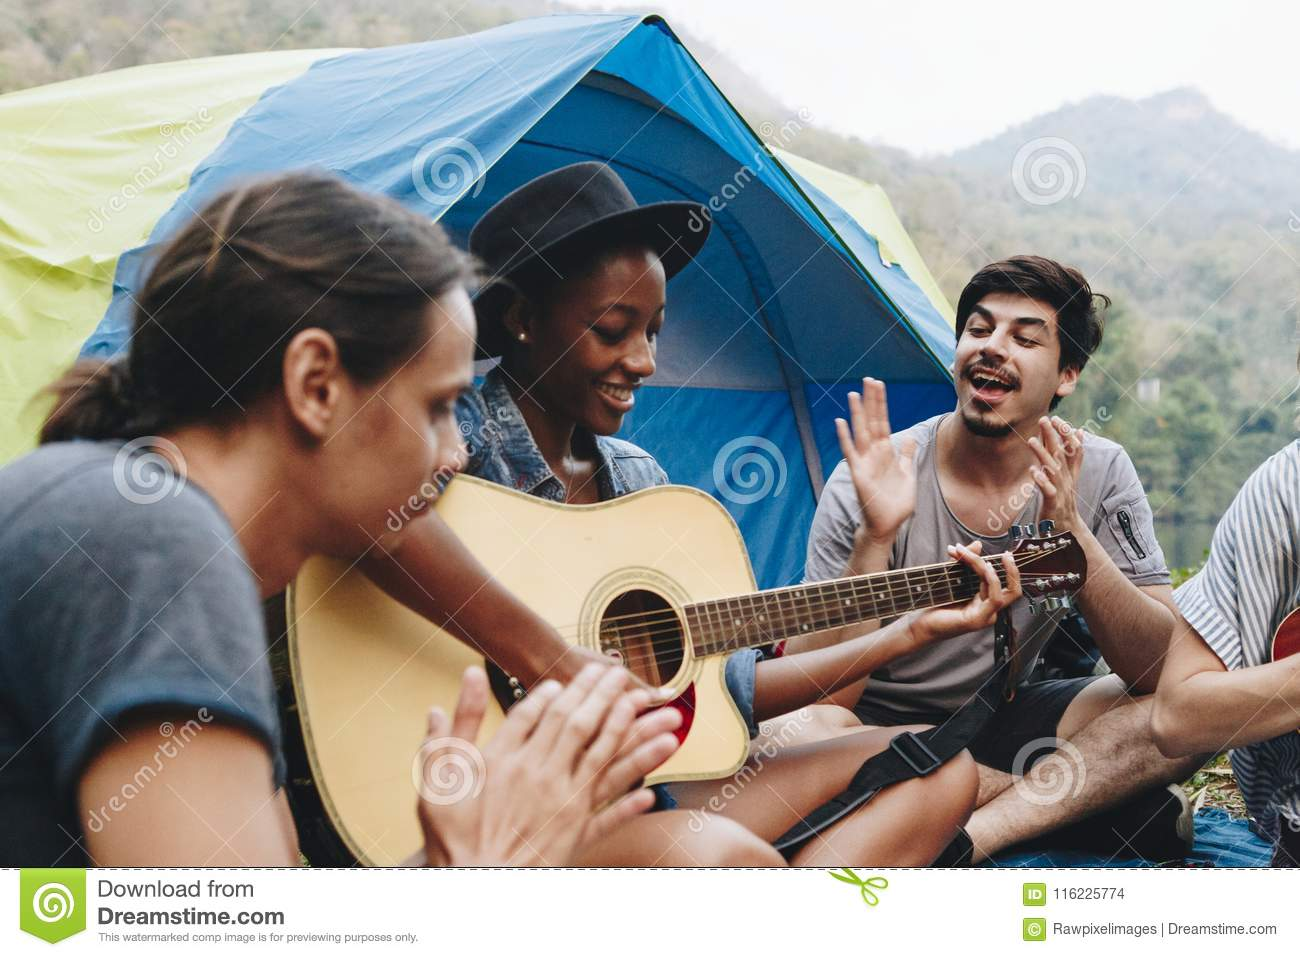 Group of young adult friends in camp site playing guitar